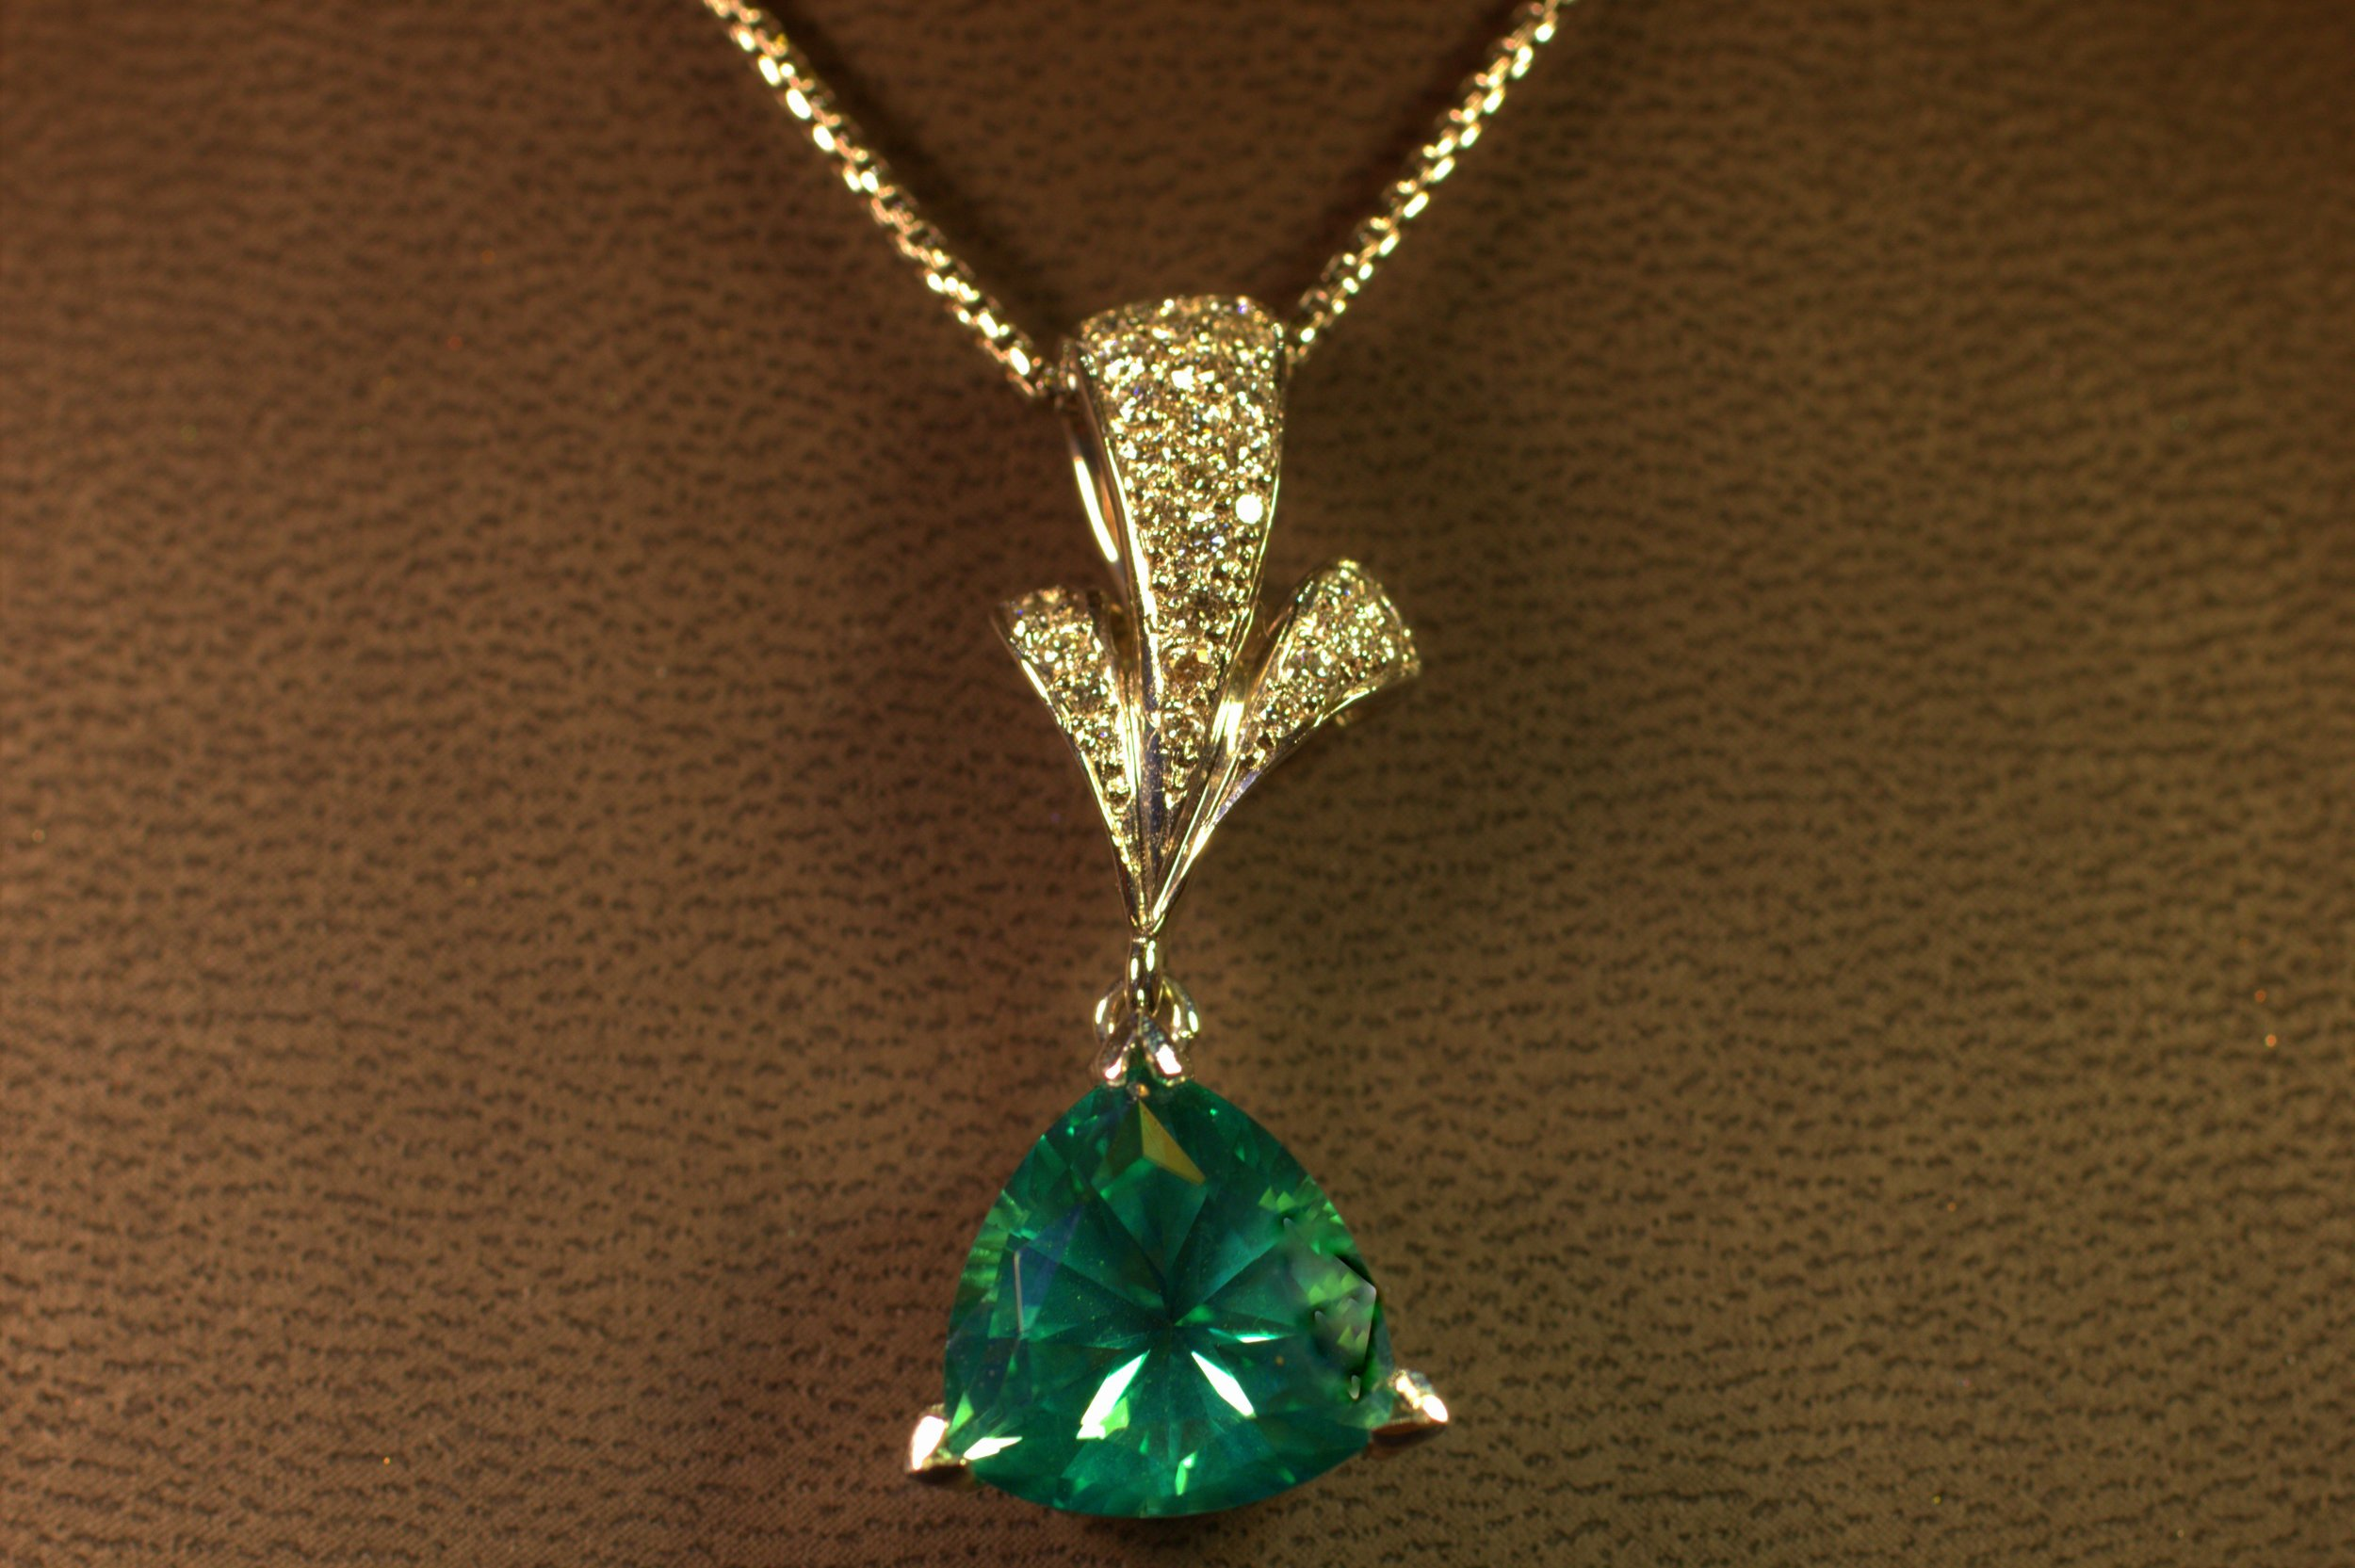 Custom seafoam green tourmaline custom pendant designed by Mark Schneider. Featuring a beautiful light seafoam green stone with diamond accent. Modern design with a classic twist.  $4750